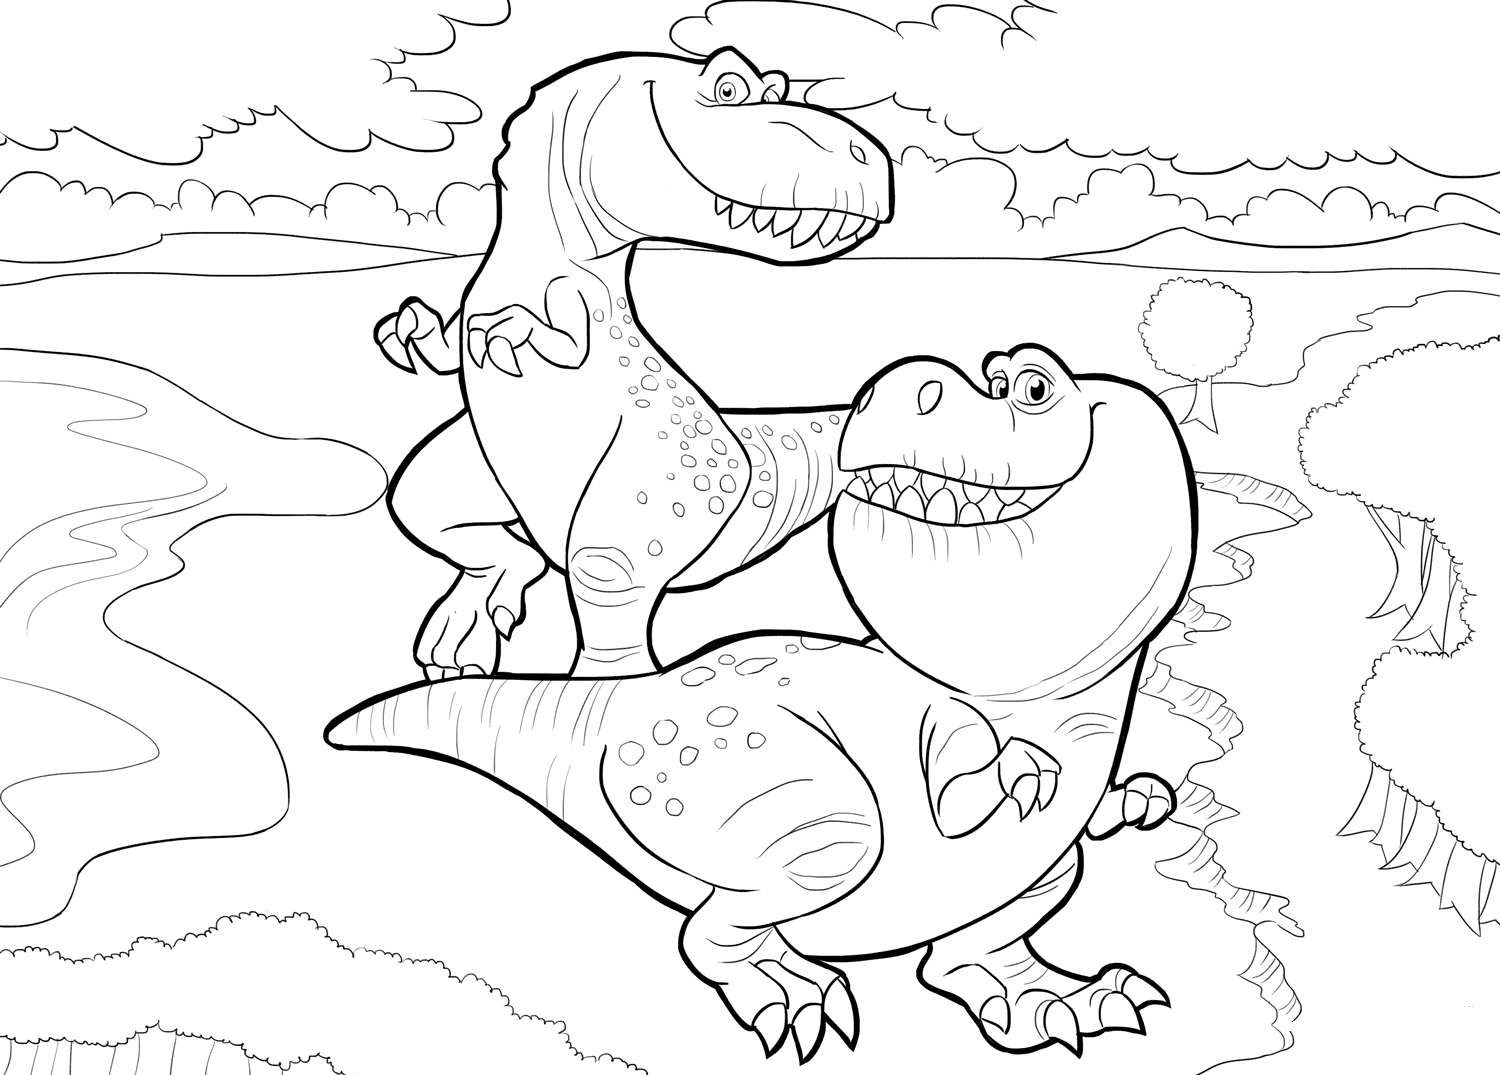 The Good Dinosaur 3 Coloring Page